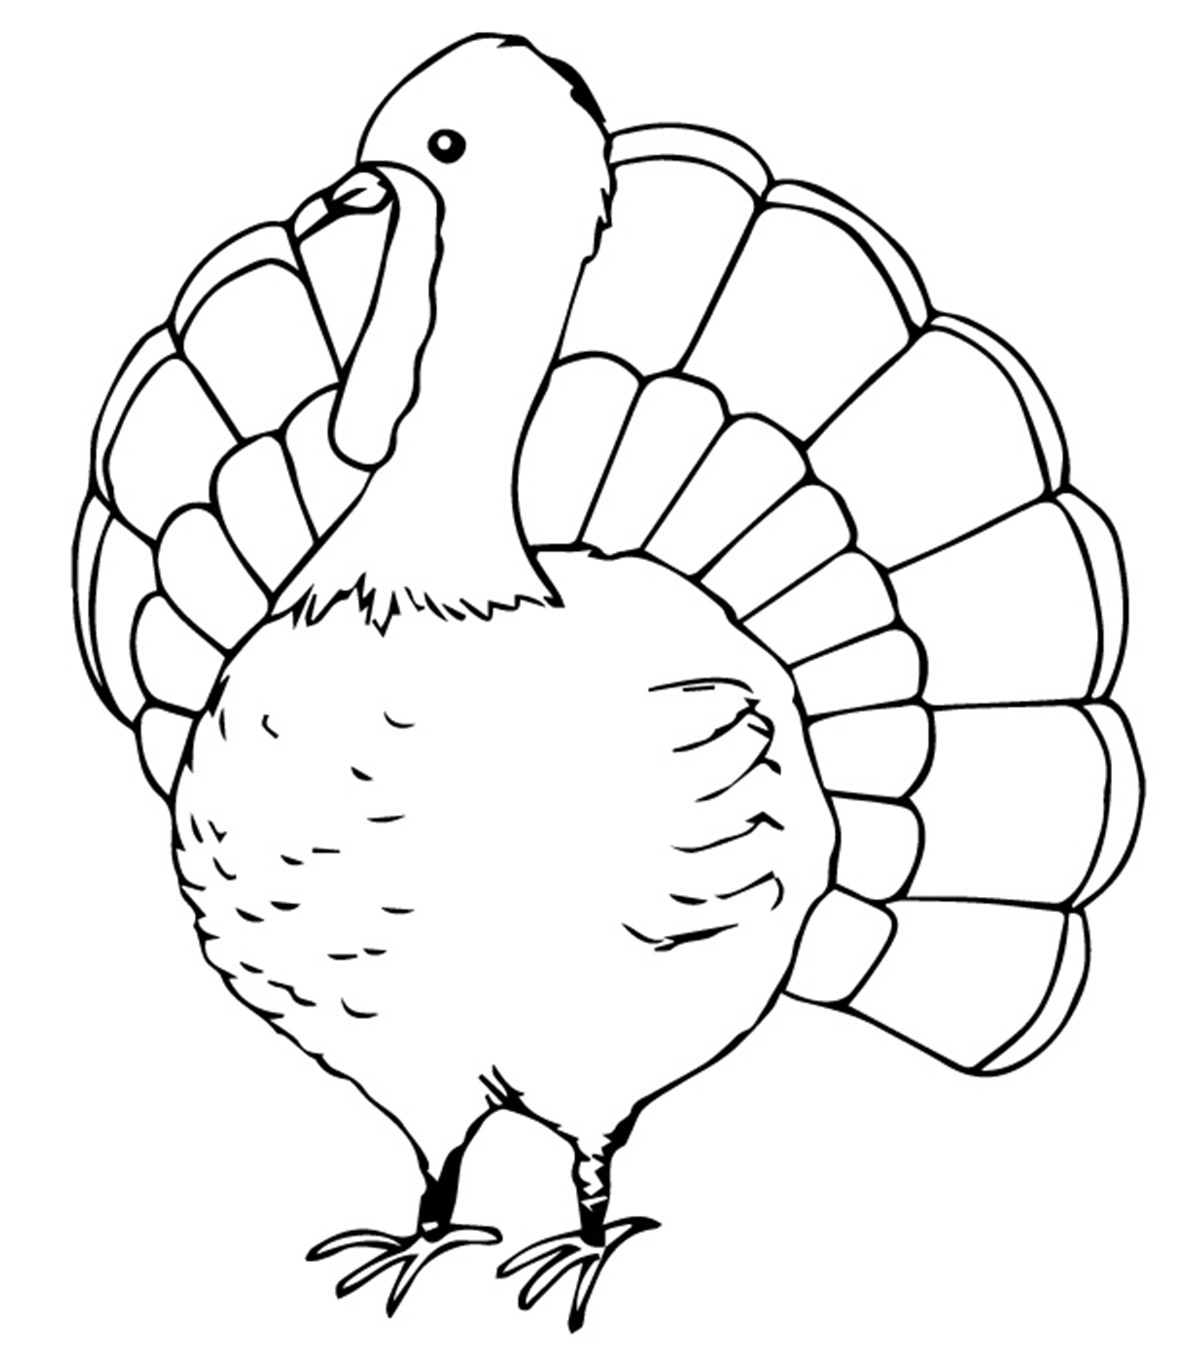 The f-turkey